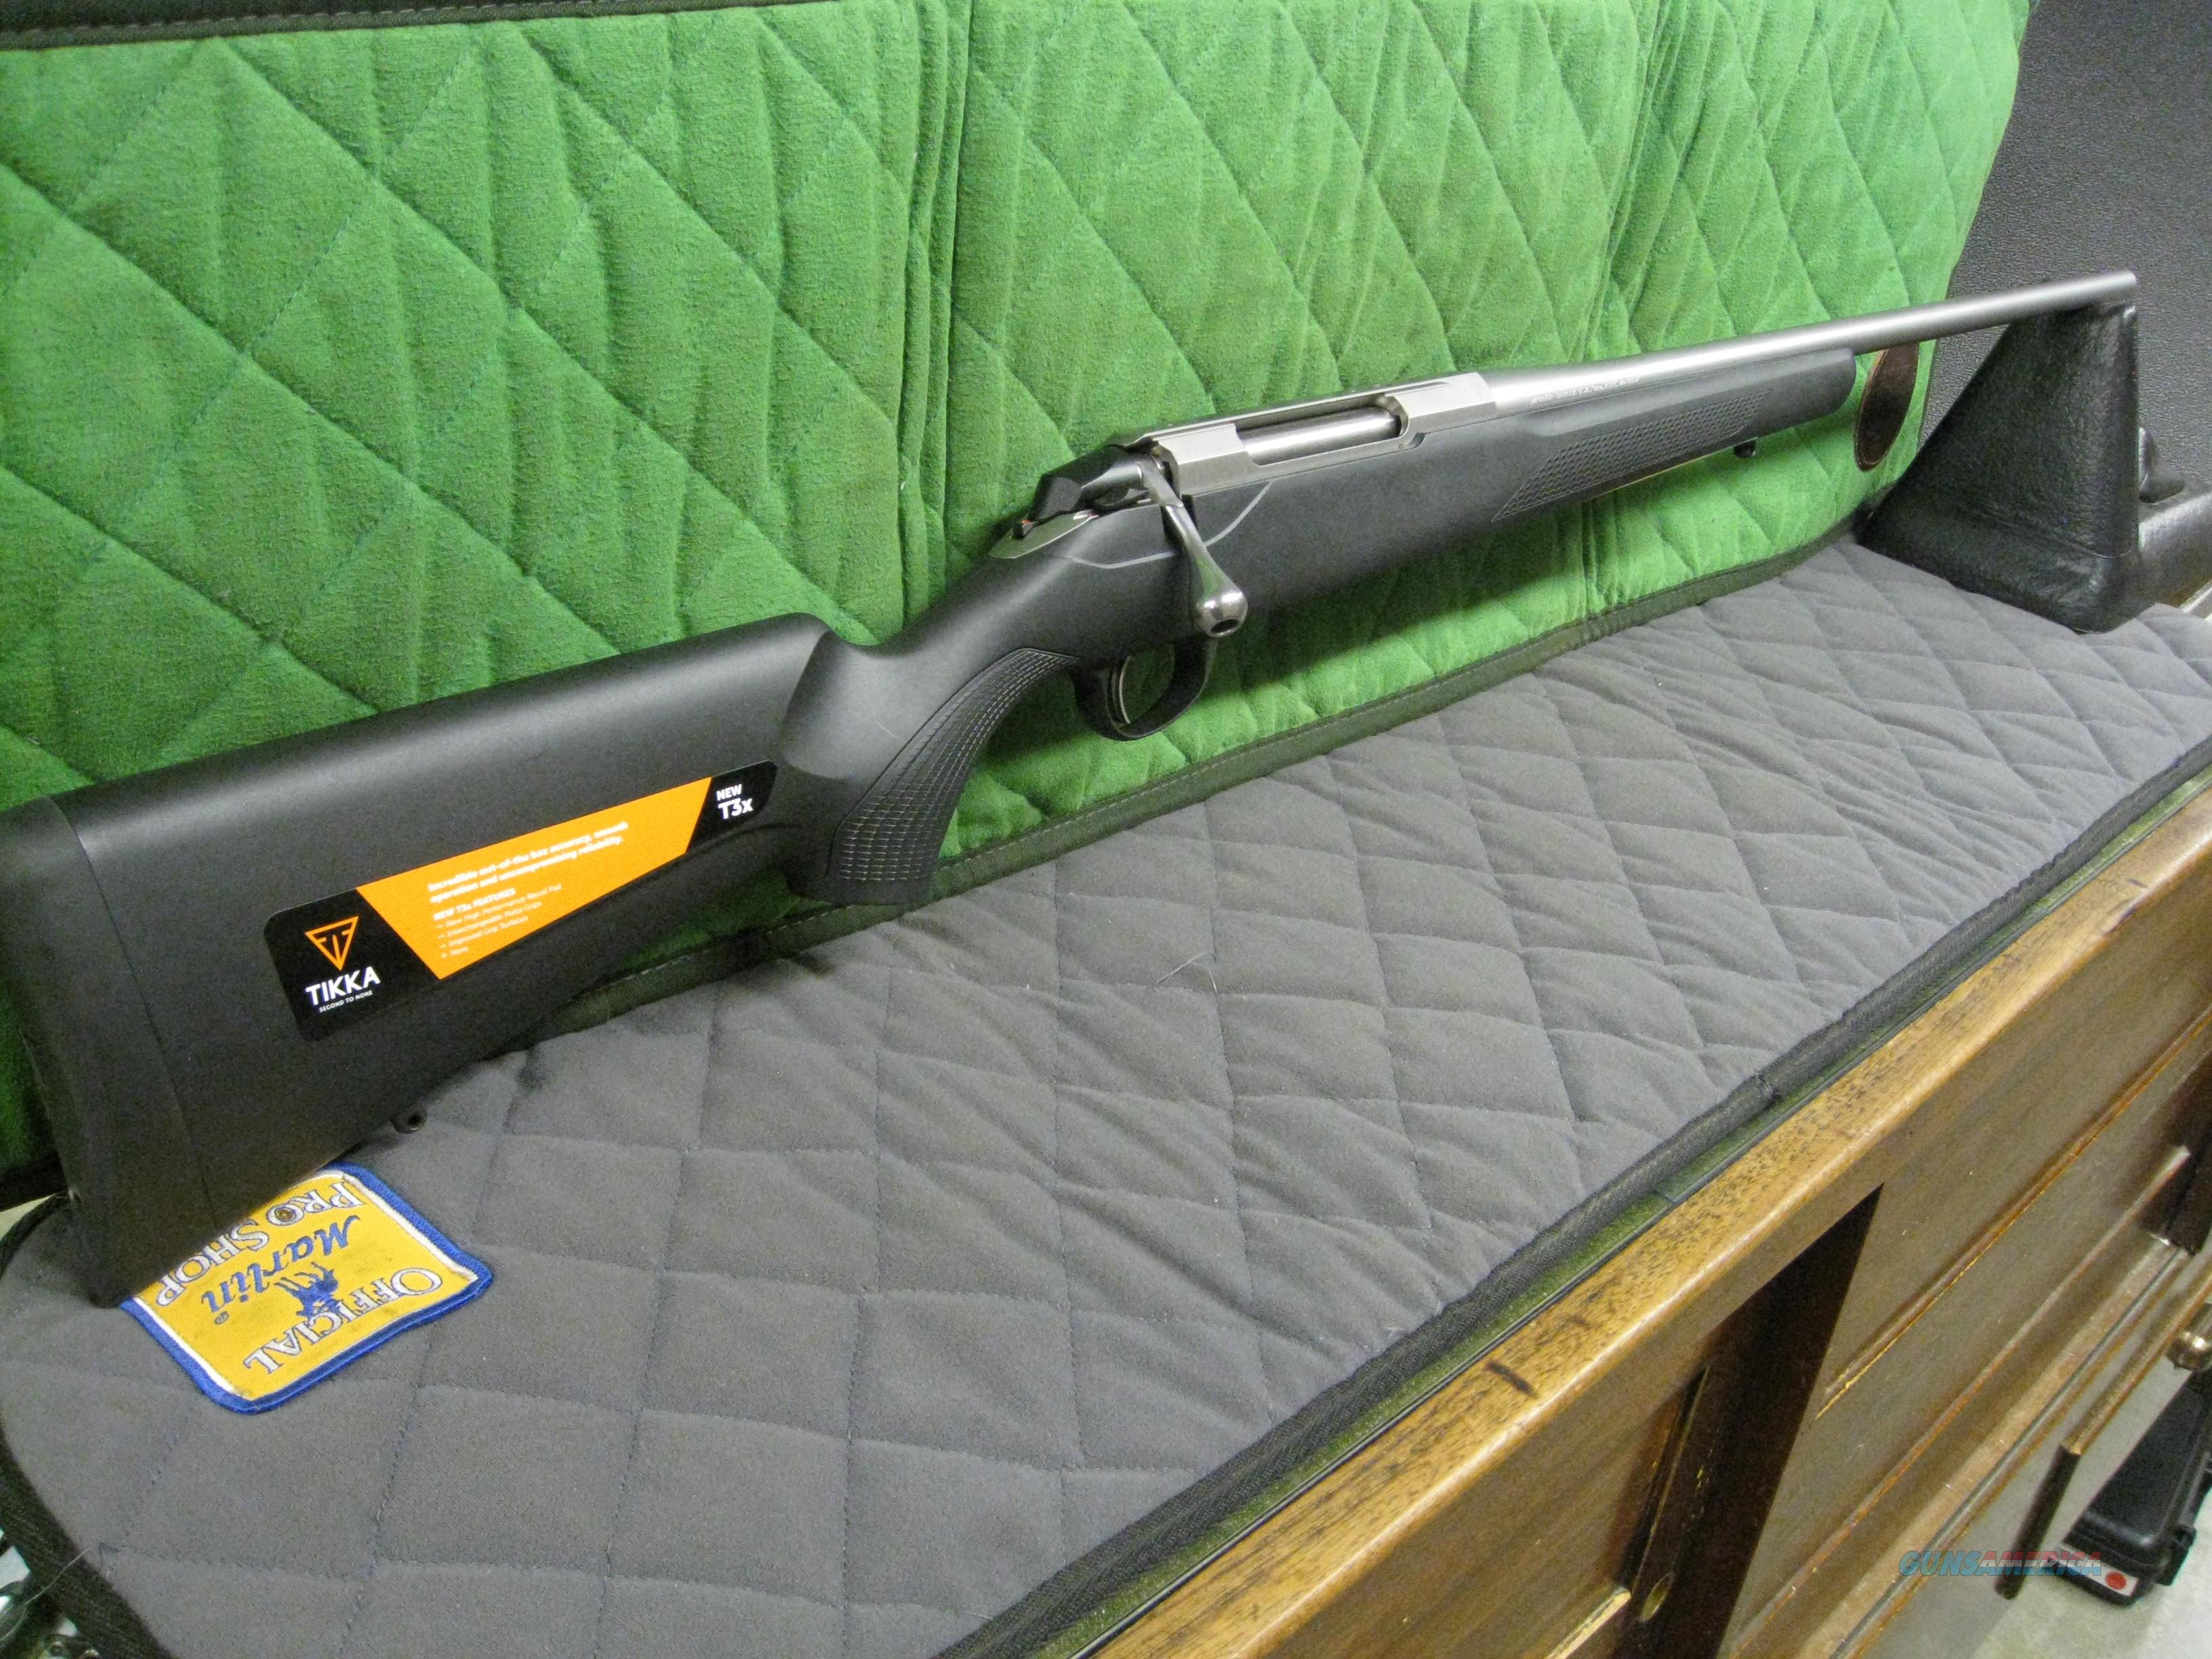 Tikka T3x Lite Stainless 300 Win Mag  **NEW**  Guns > Rifles > Tikka Rifles > T3